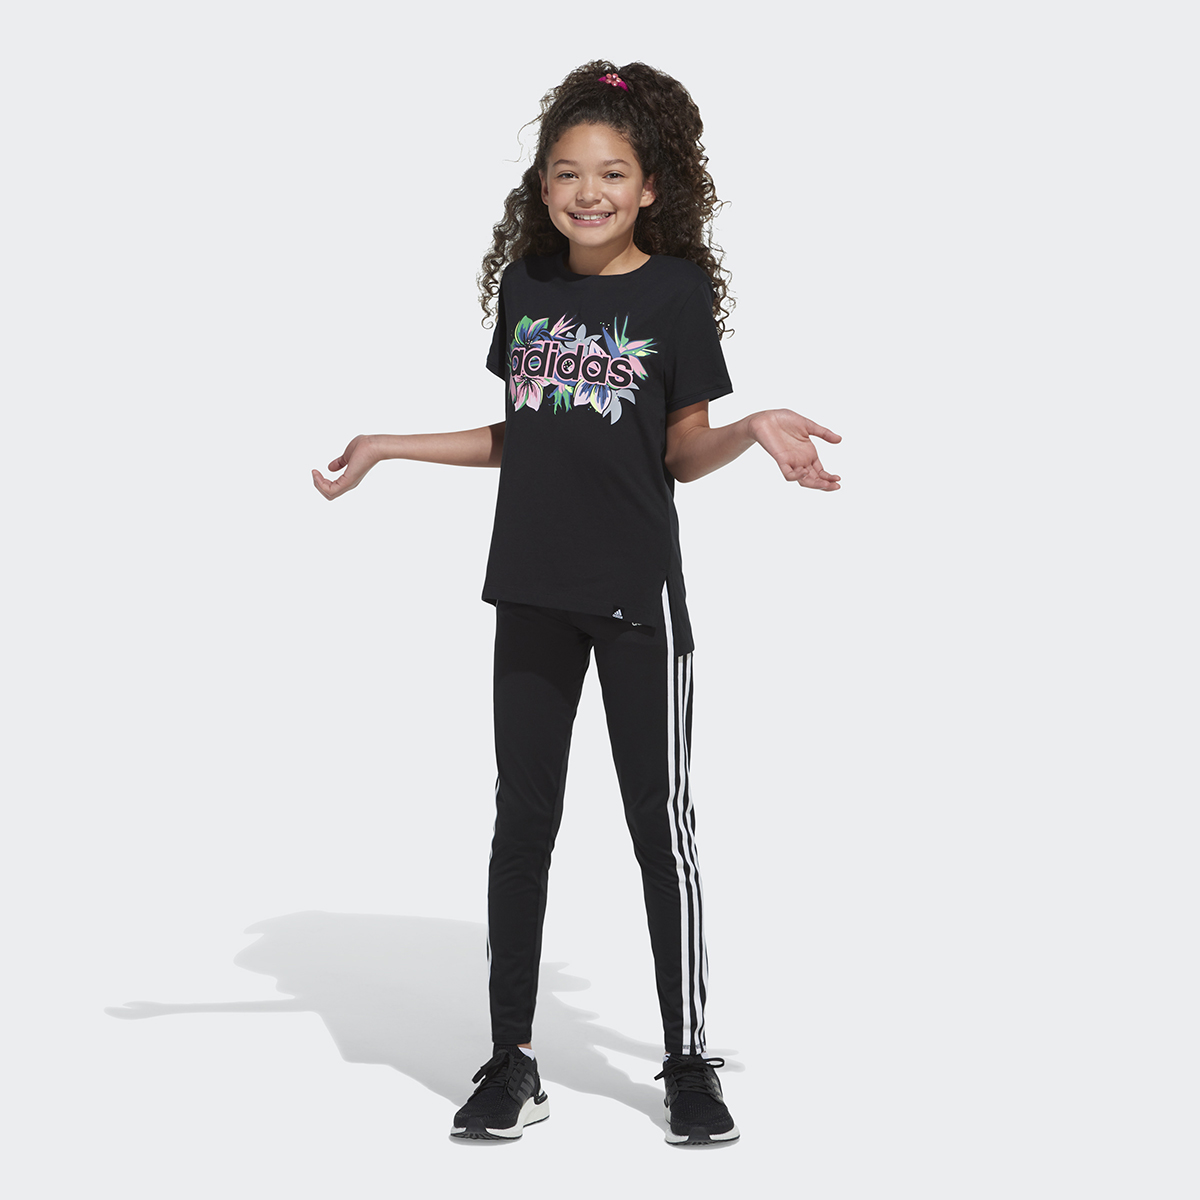 ADIDAS_YOUTH_SPRING21_AA4845_AK01_3534